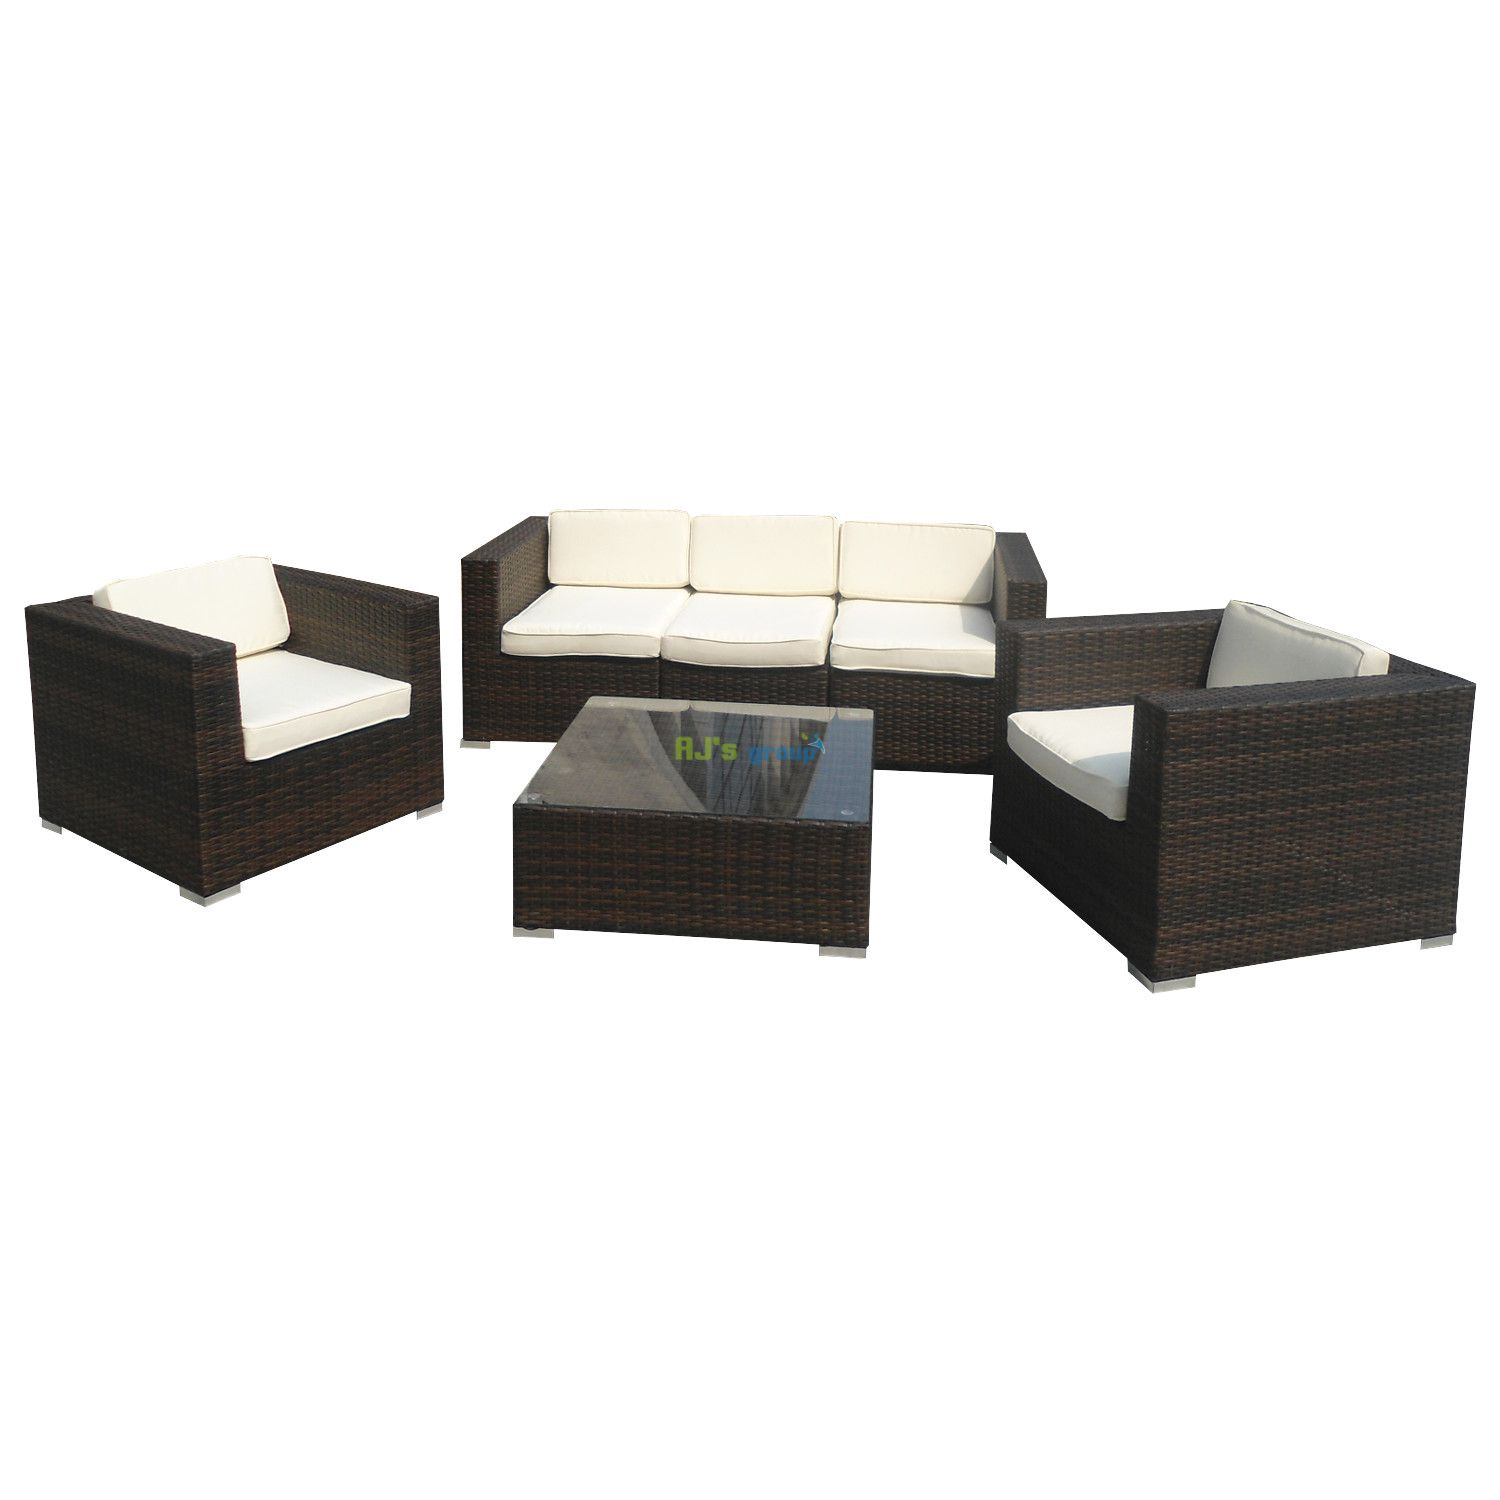 polyrattan gartenmbel outlet rattan gartenmobel outlet nrw tags rattan gartenmobel ausverkauf. Black Bedroom Furniture Sets. Home Design Ideas